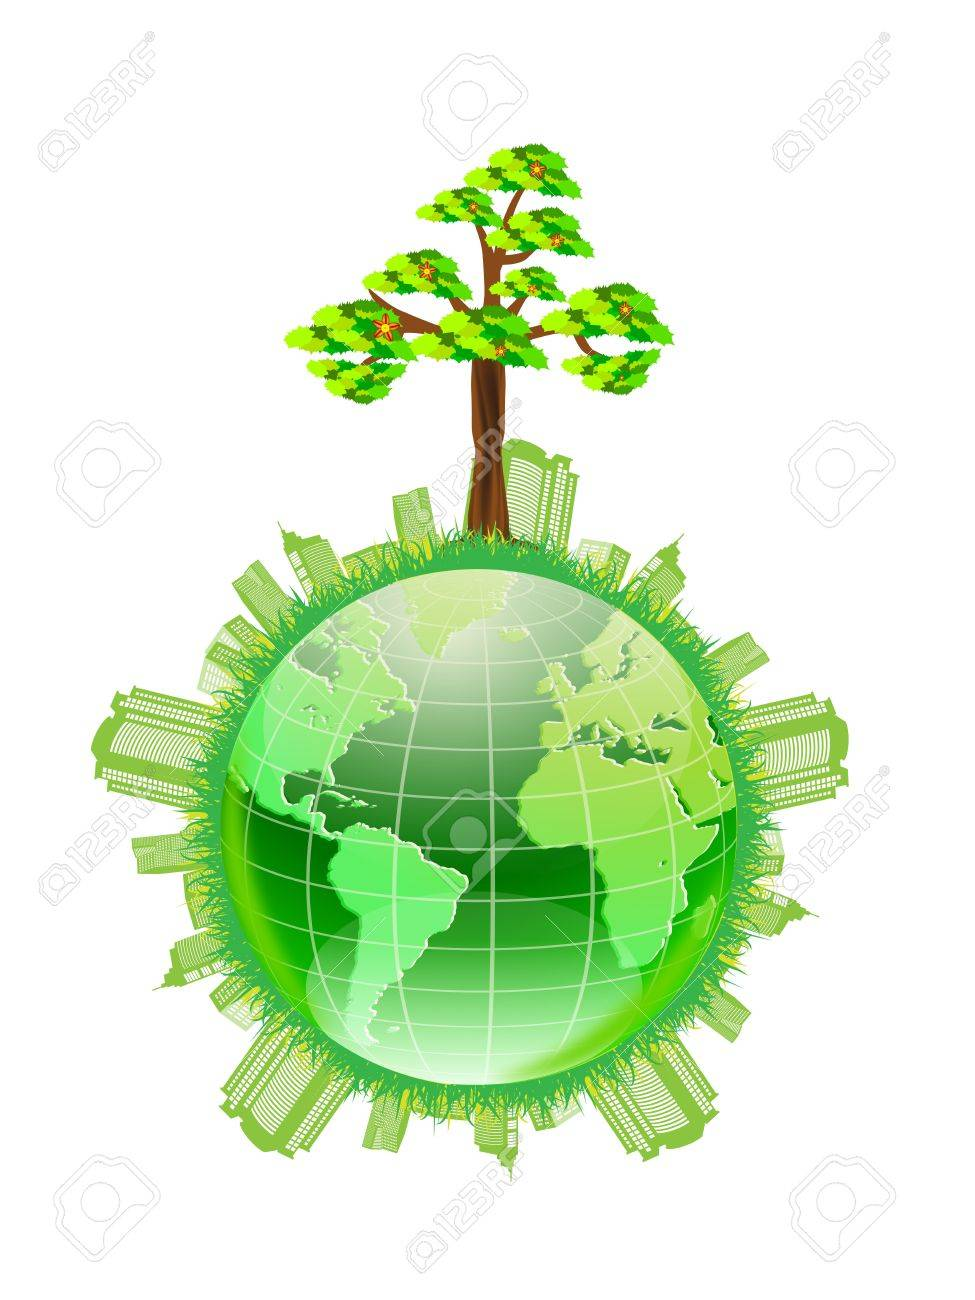 abstract green world illustration - ecology / wind turbines concept Stock Vector - 11909347